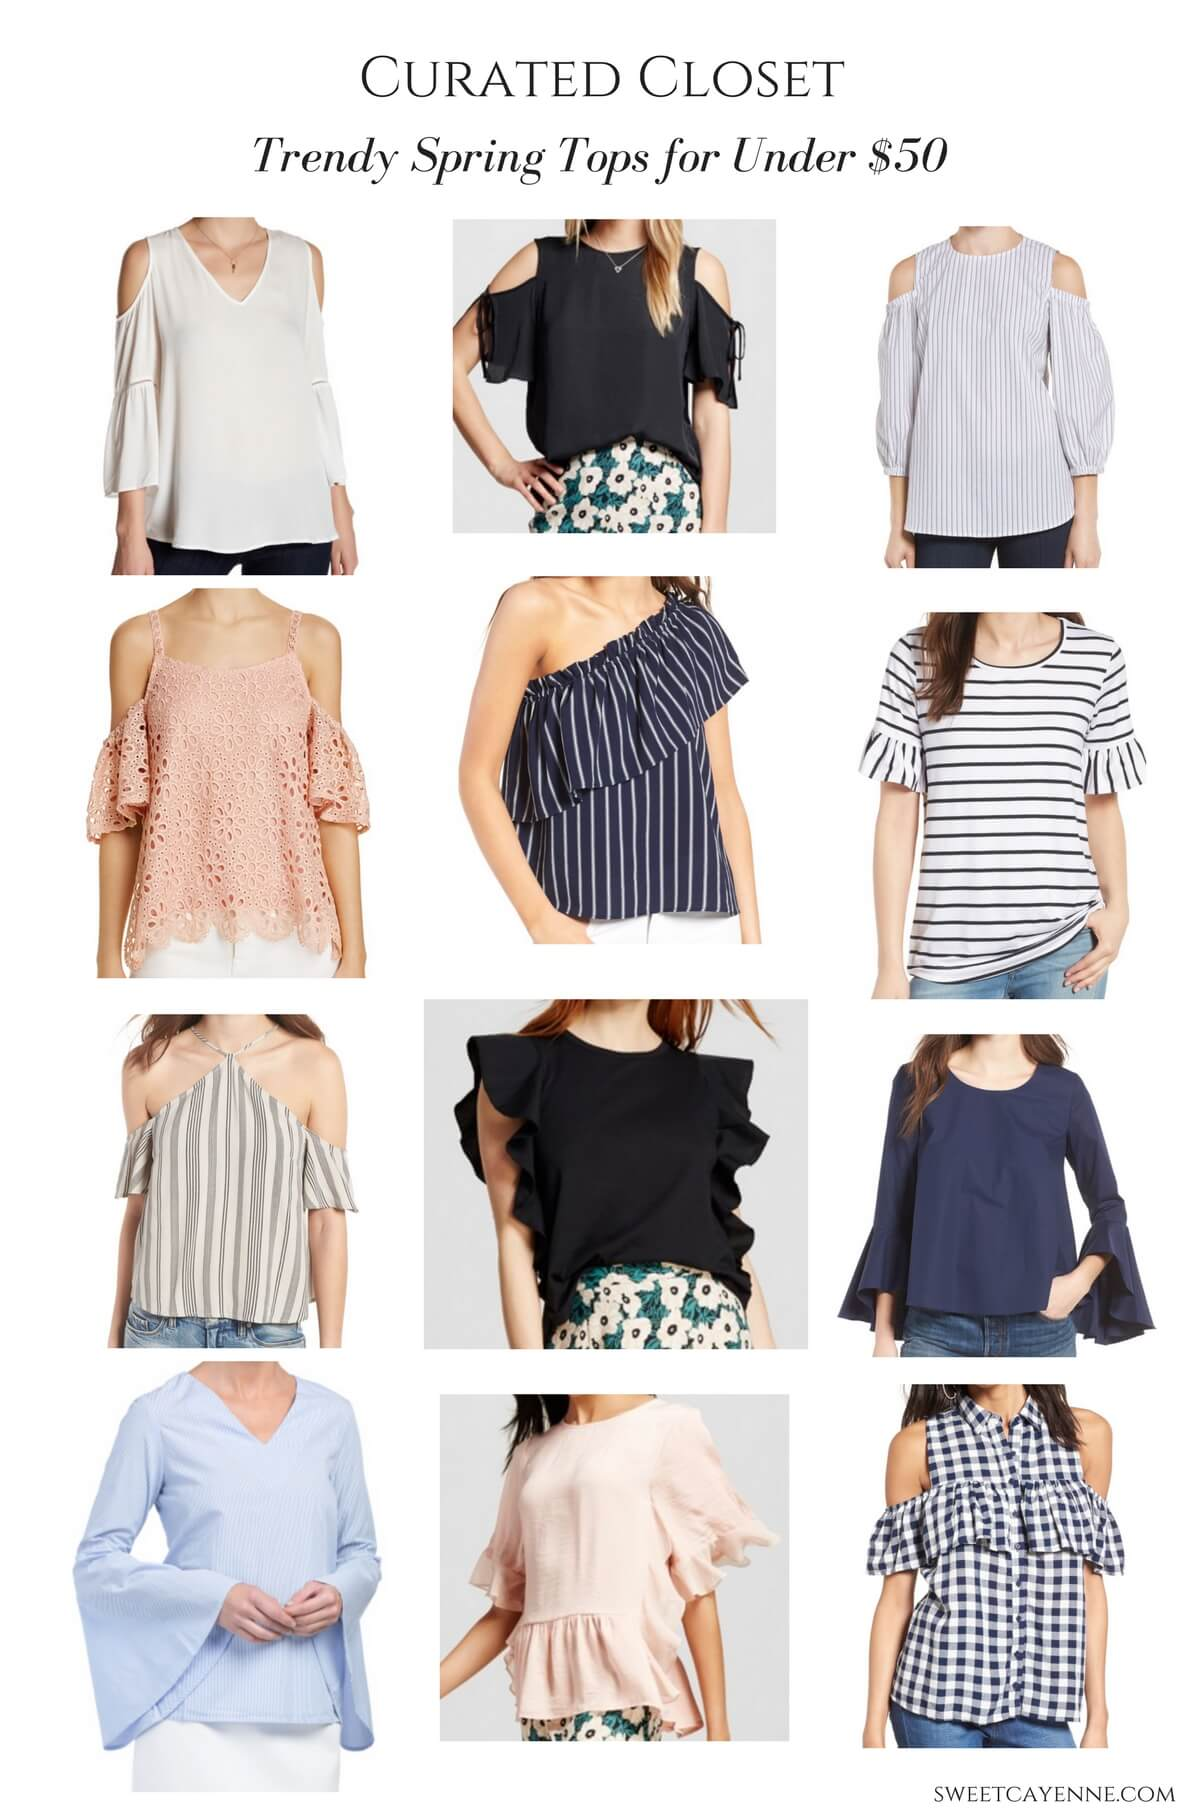 The ultimate guide to trendy 2017 tops - 12 options and all under $50! Spring shopping guide.